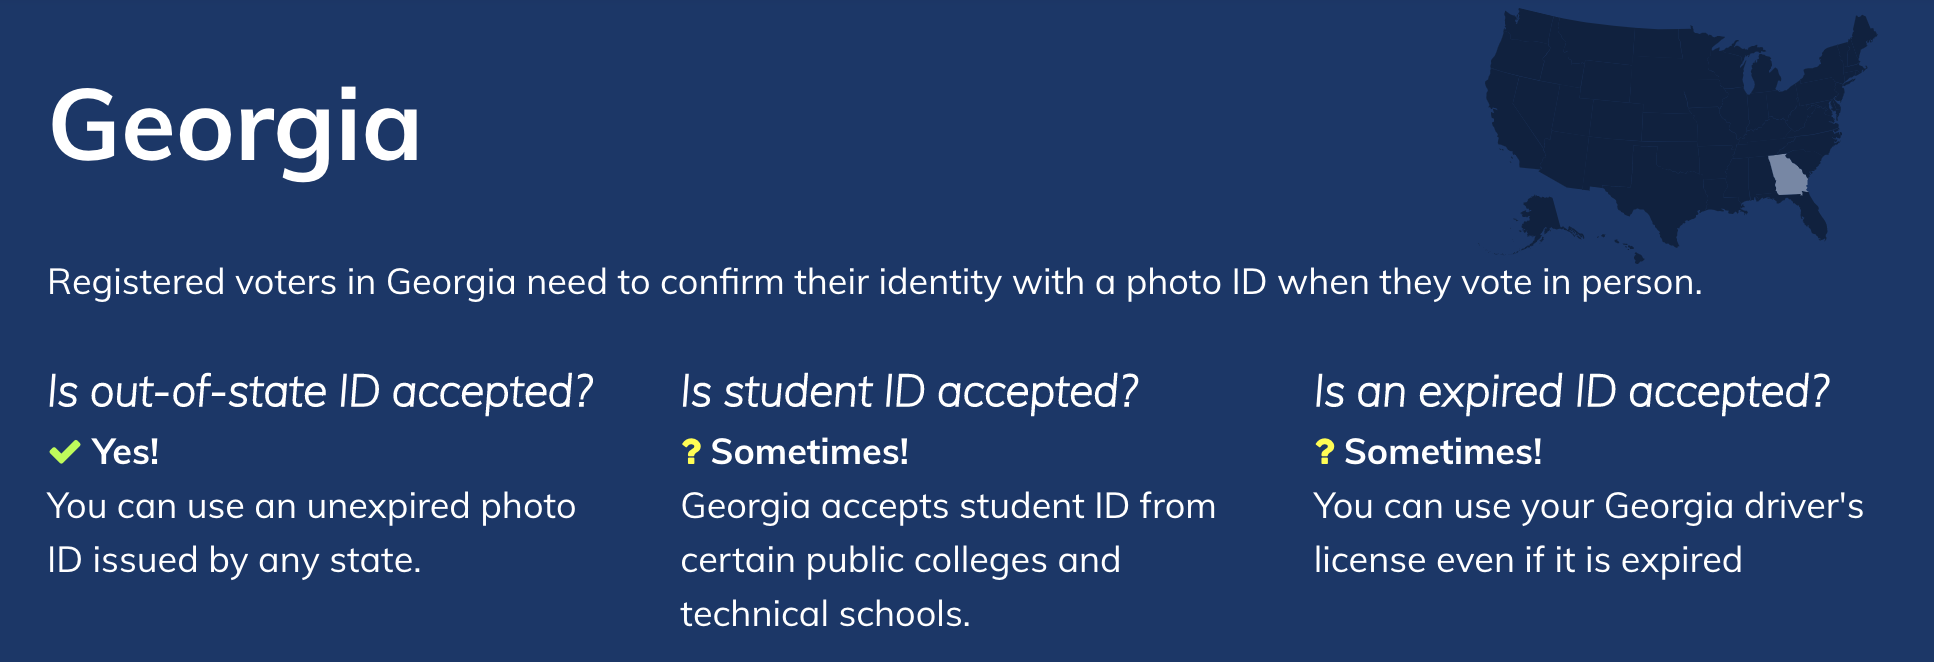 Georgia Voter ID laws